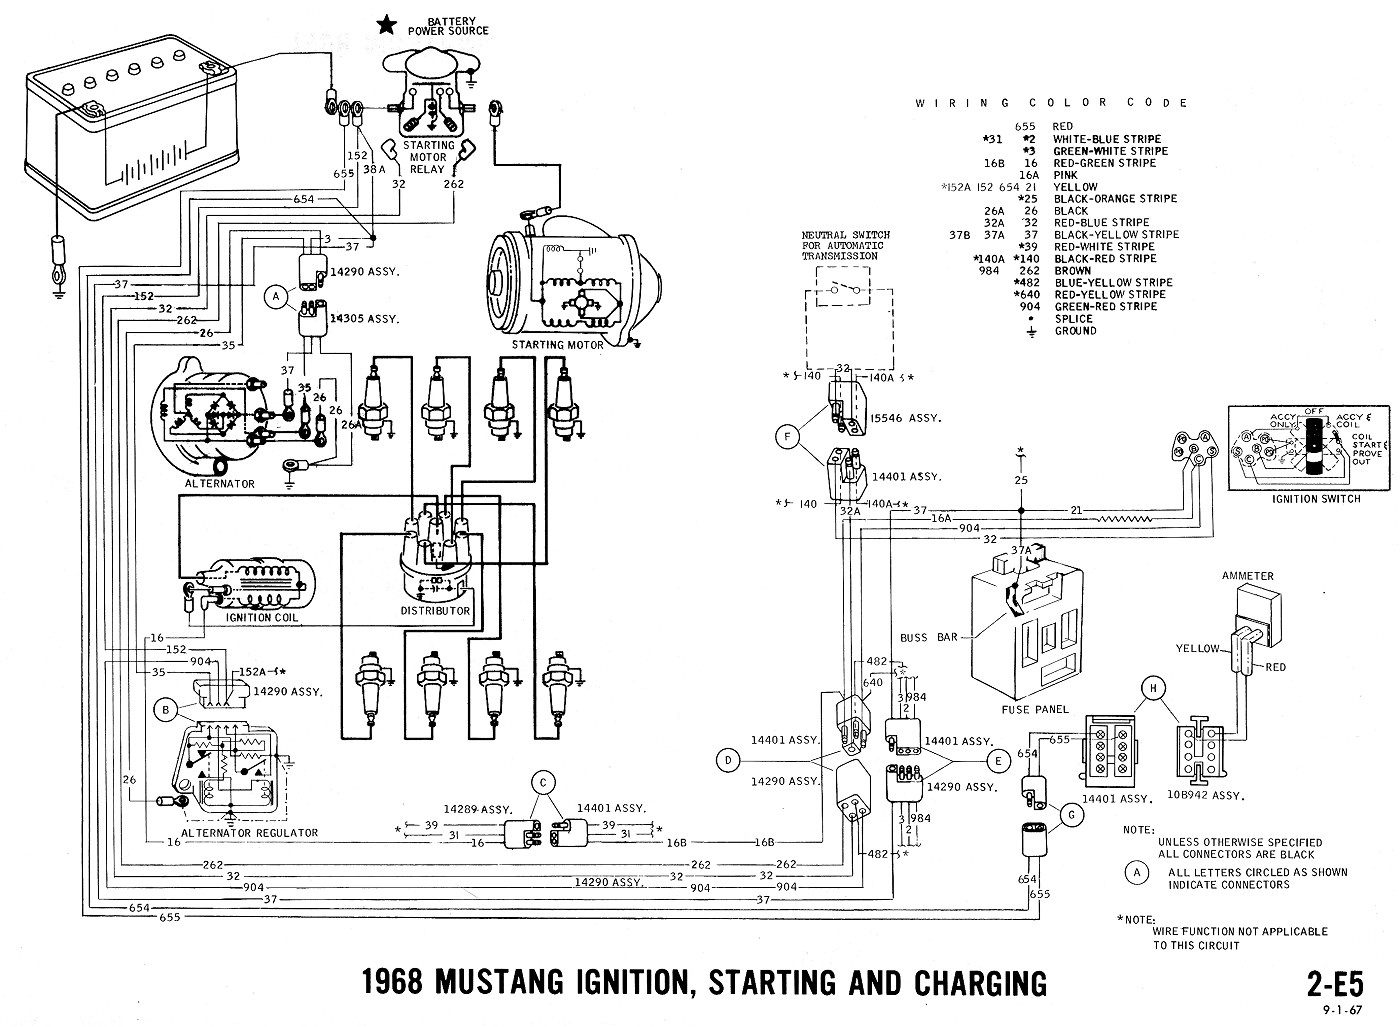 E5 1968 mustang wiring diagrams evolving software 1966 mustang engine wire harness at bakdesigns.co